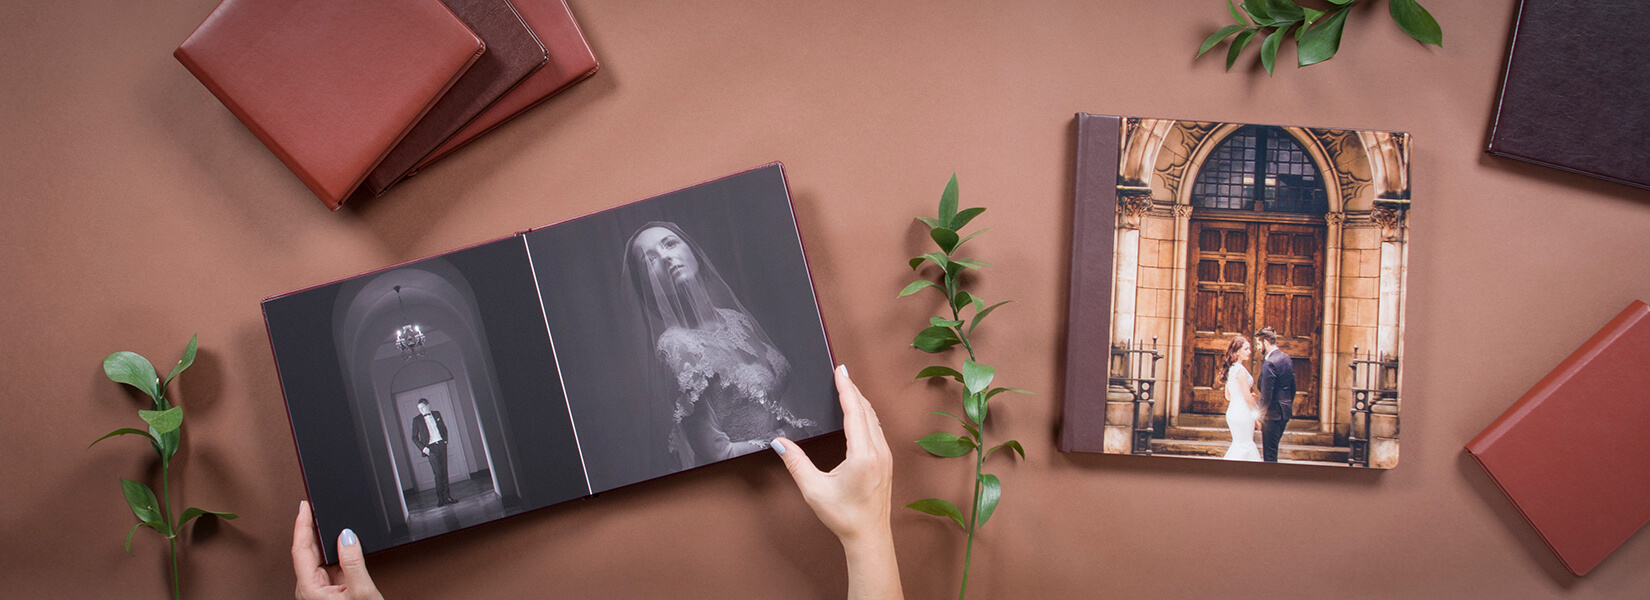 Handcrafted lay flat Photo album for photographers nphoto